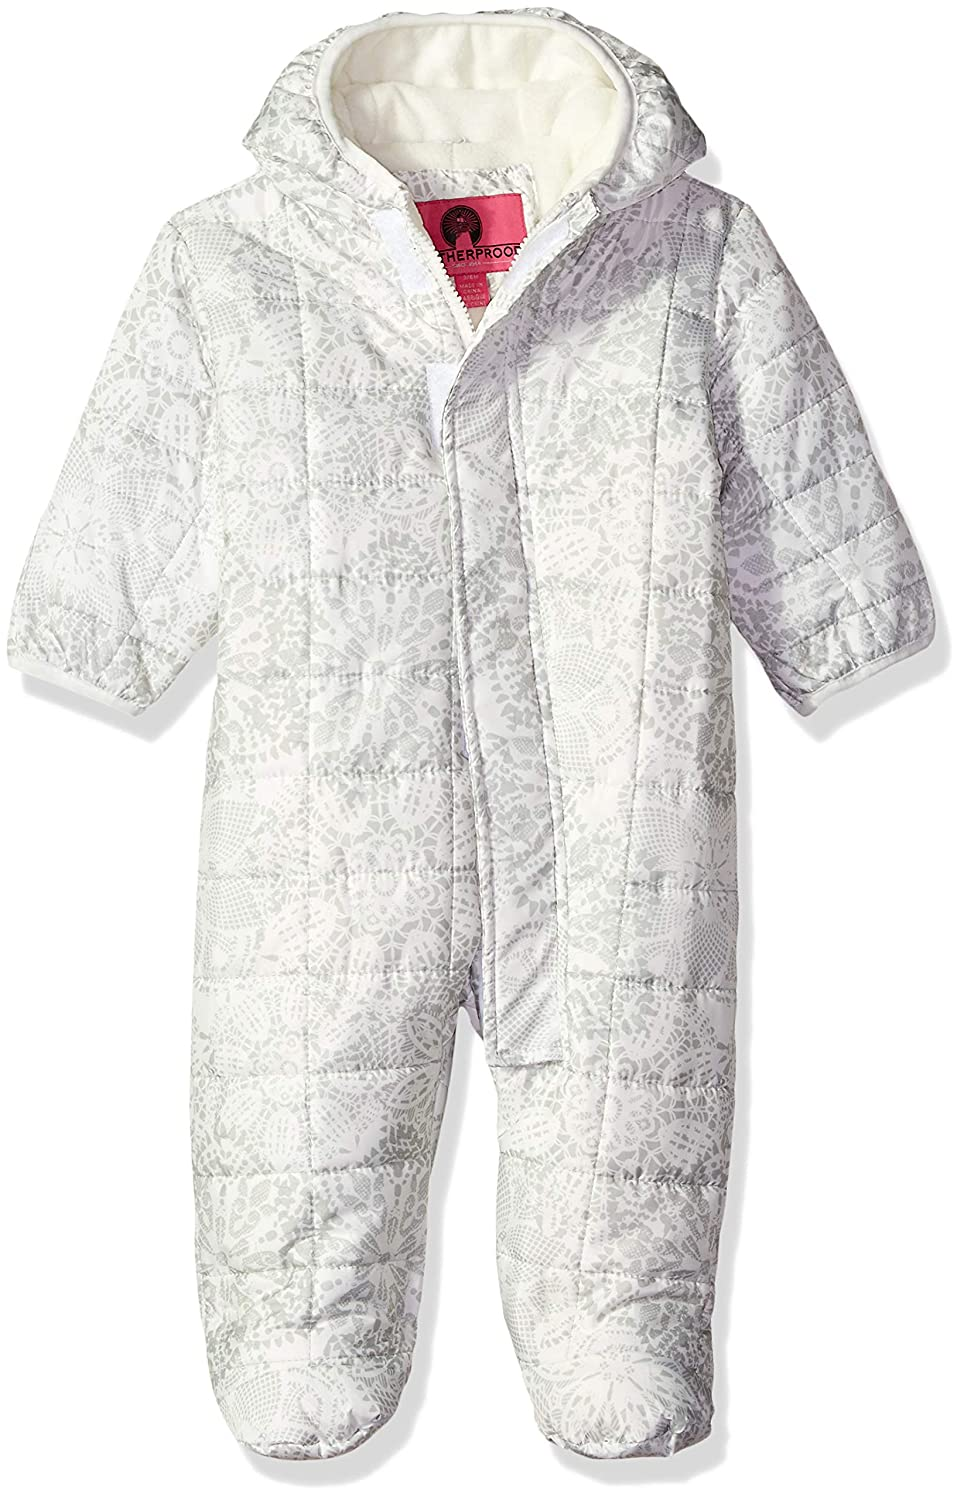 Weather Proof Baby Girls Quilted Pram